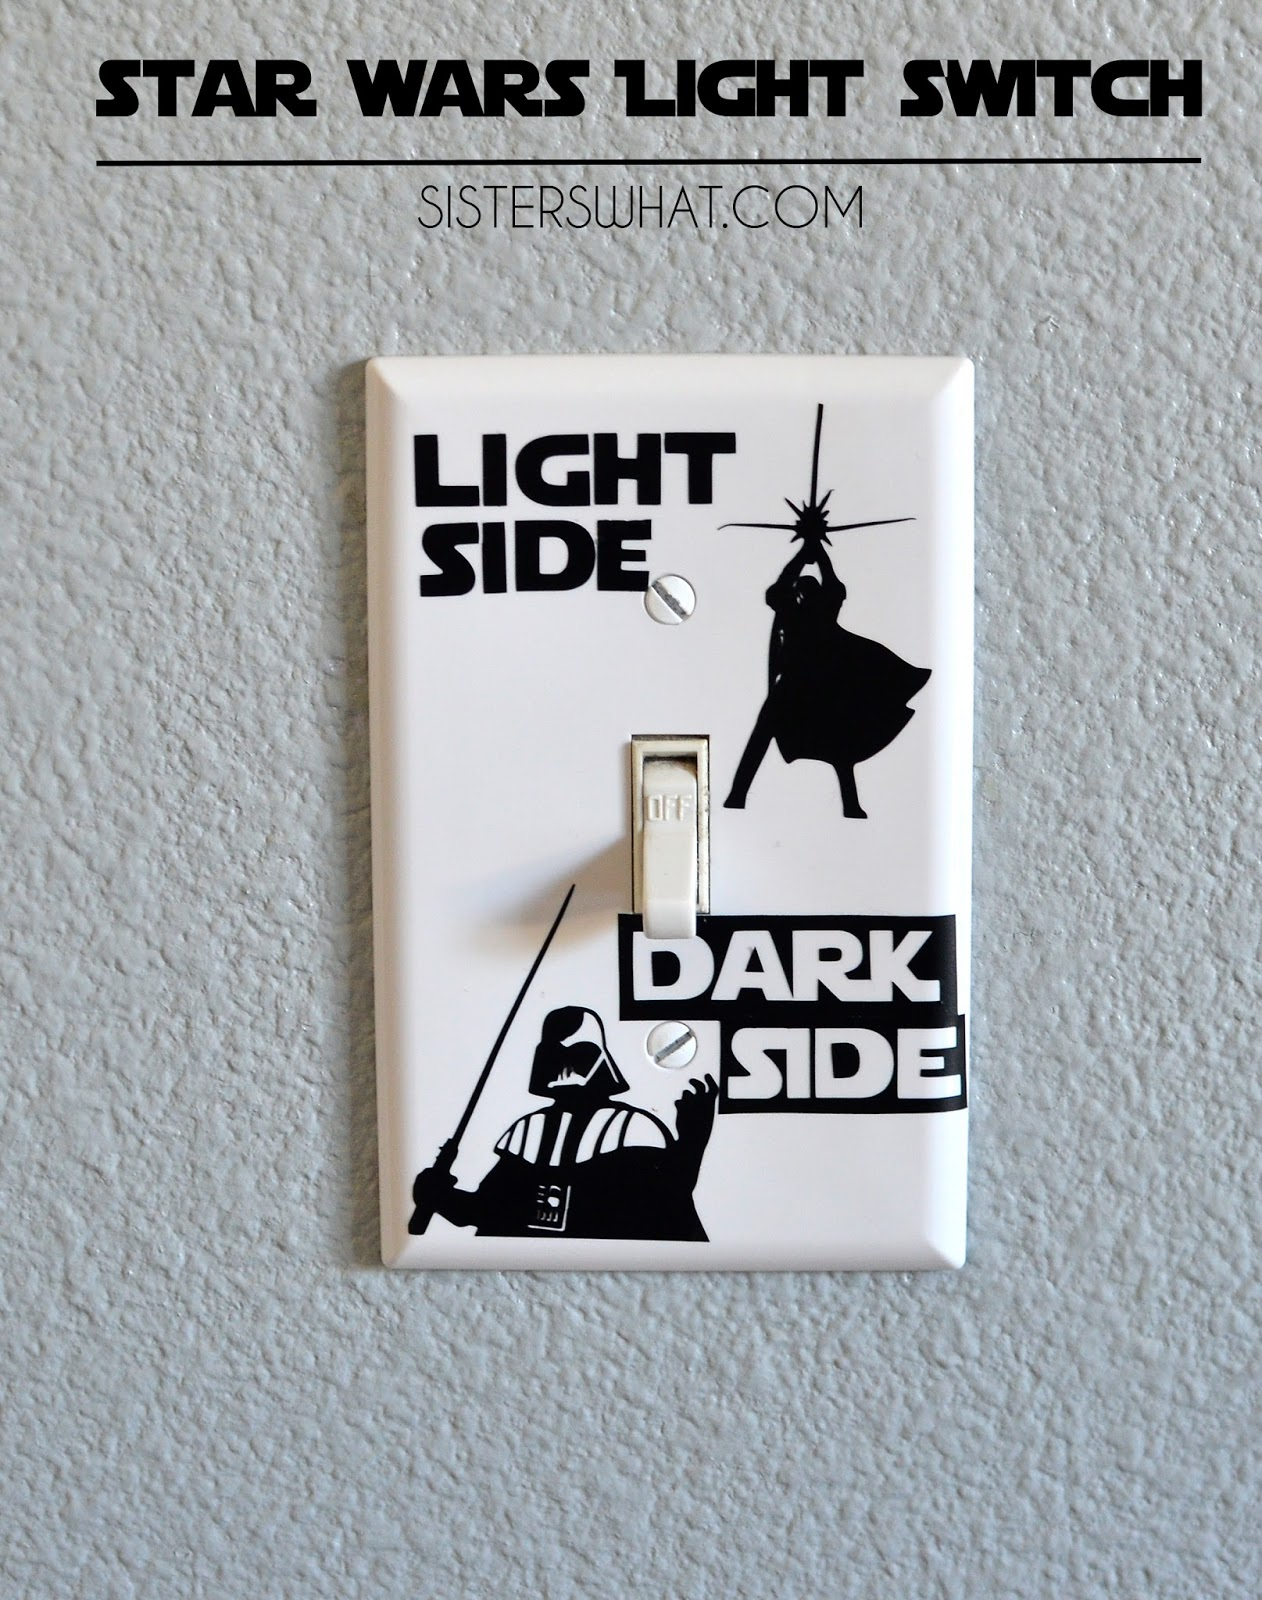 Mega List Of Over 100 Free Star Wars Printables Crafts And Resources For Fans